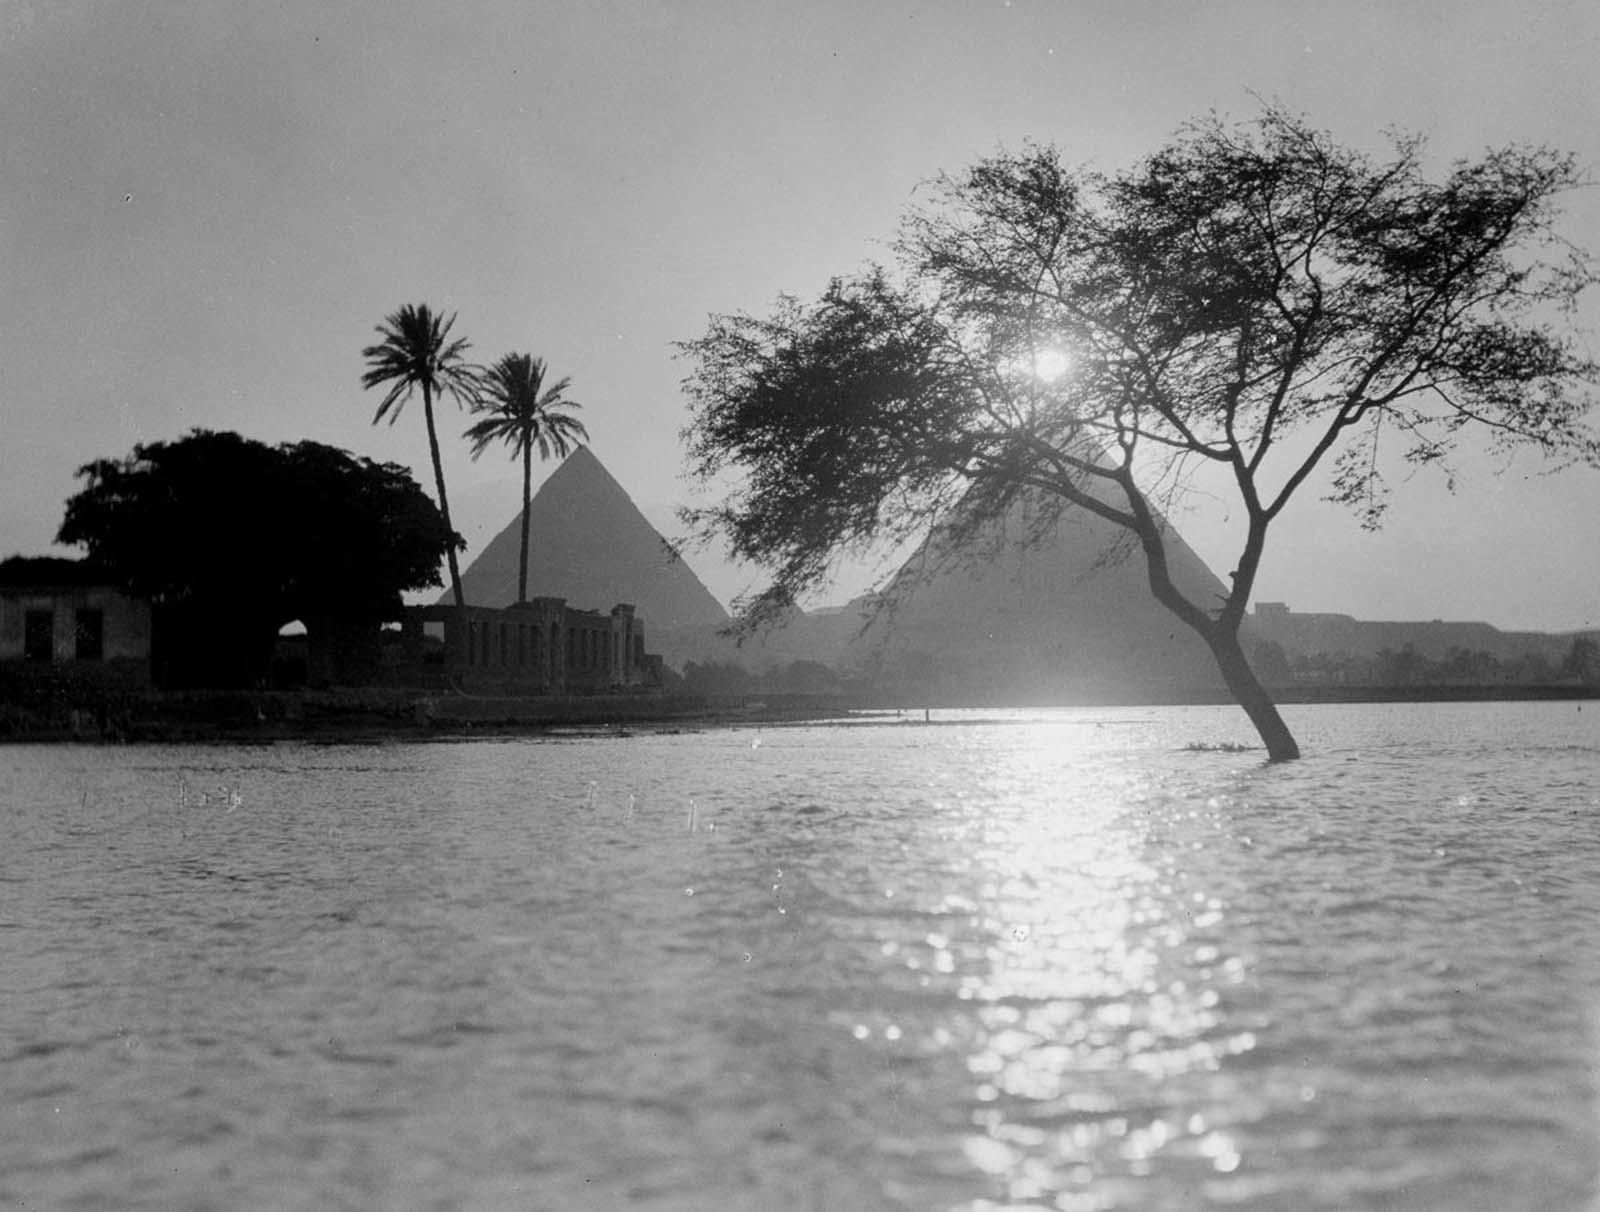 A tree stands partially submerged near the pyramids as the Nile overflows its banks. 1900.